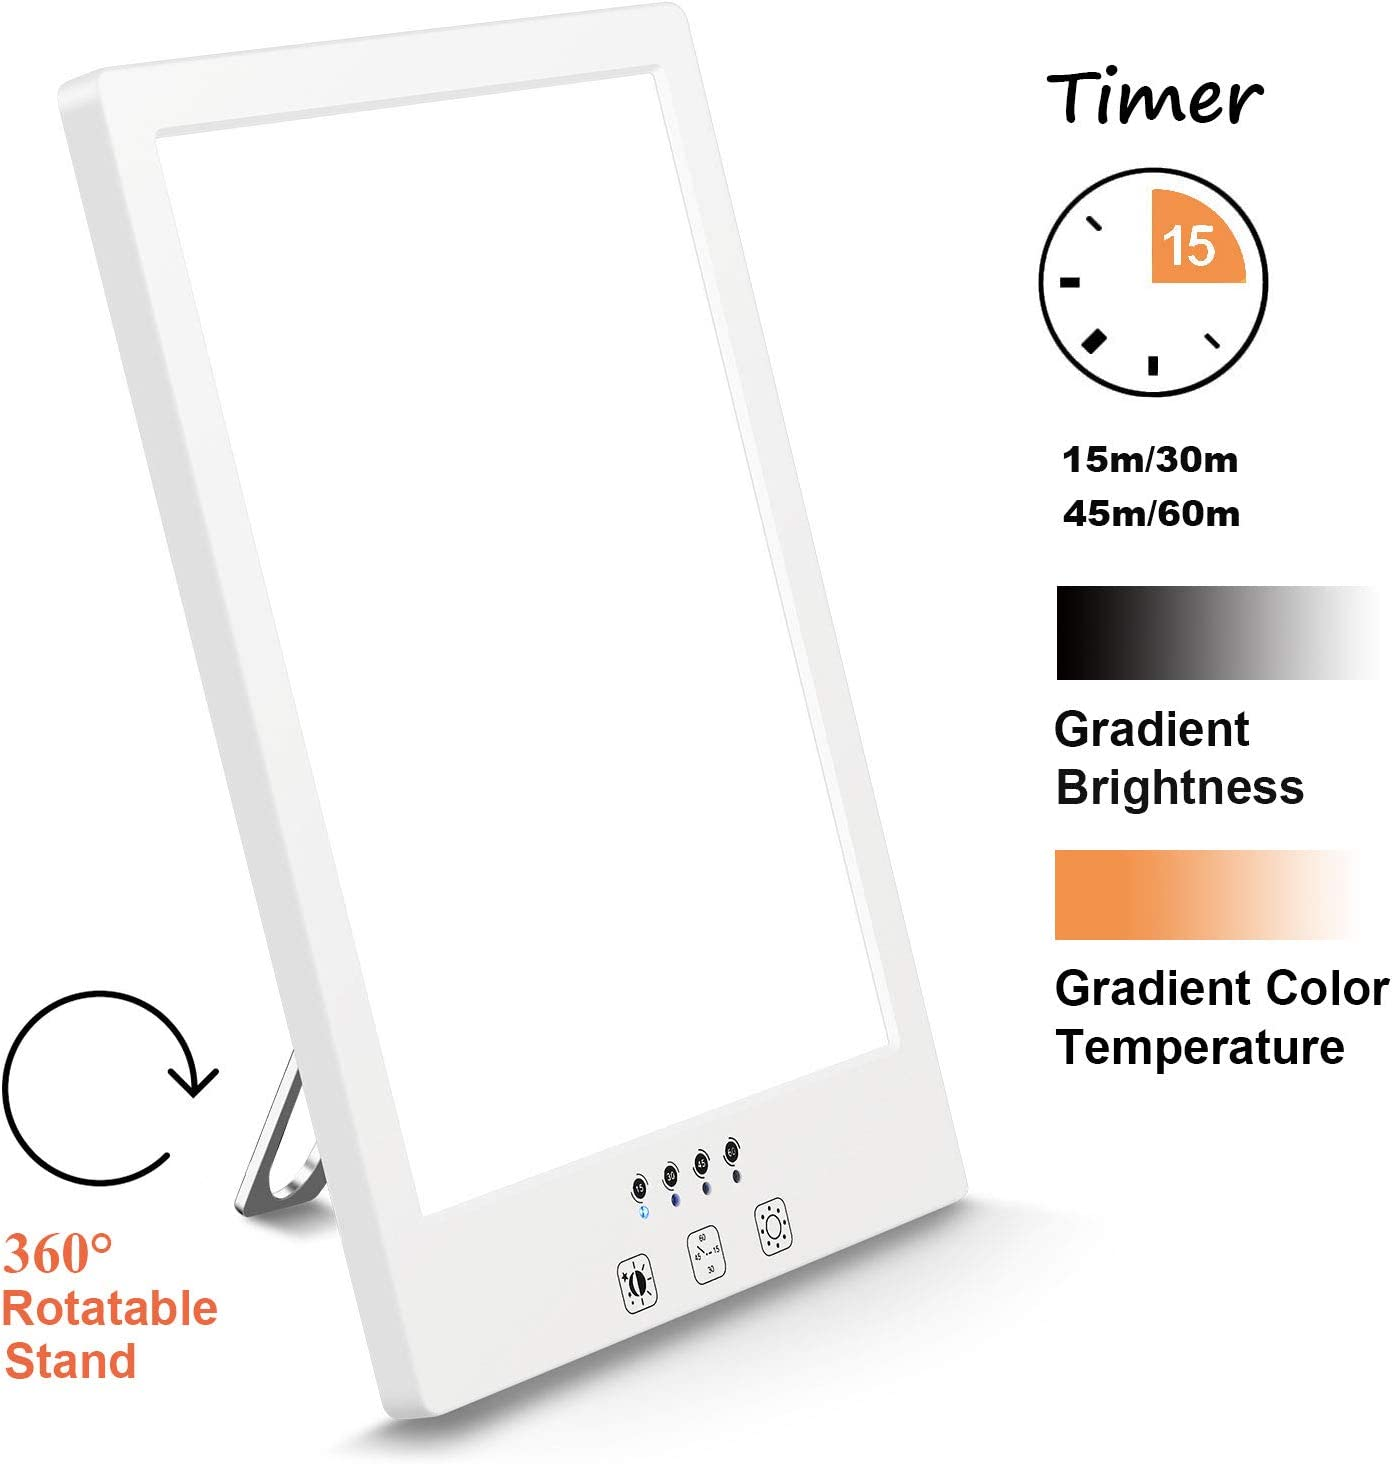 Comenzar Sun Lamp LED White Warm Sad Lamp UV Free 2000-12000 Lux Gradient Brightness Therapy Lamp Timer Function and Touch Control for Home Office Use